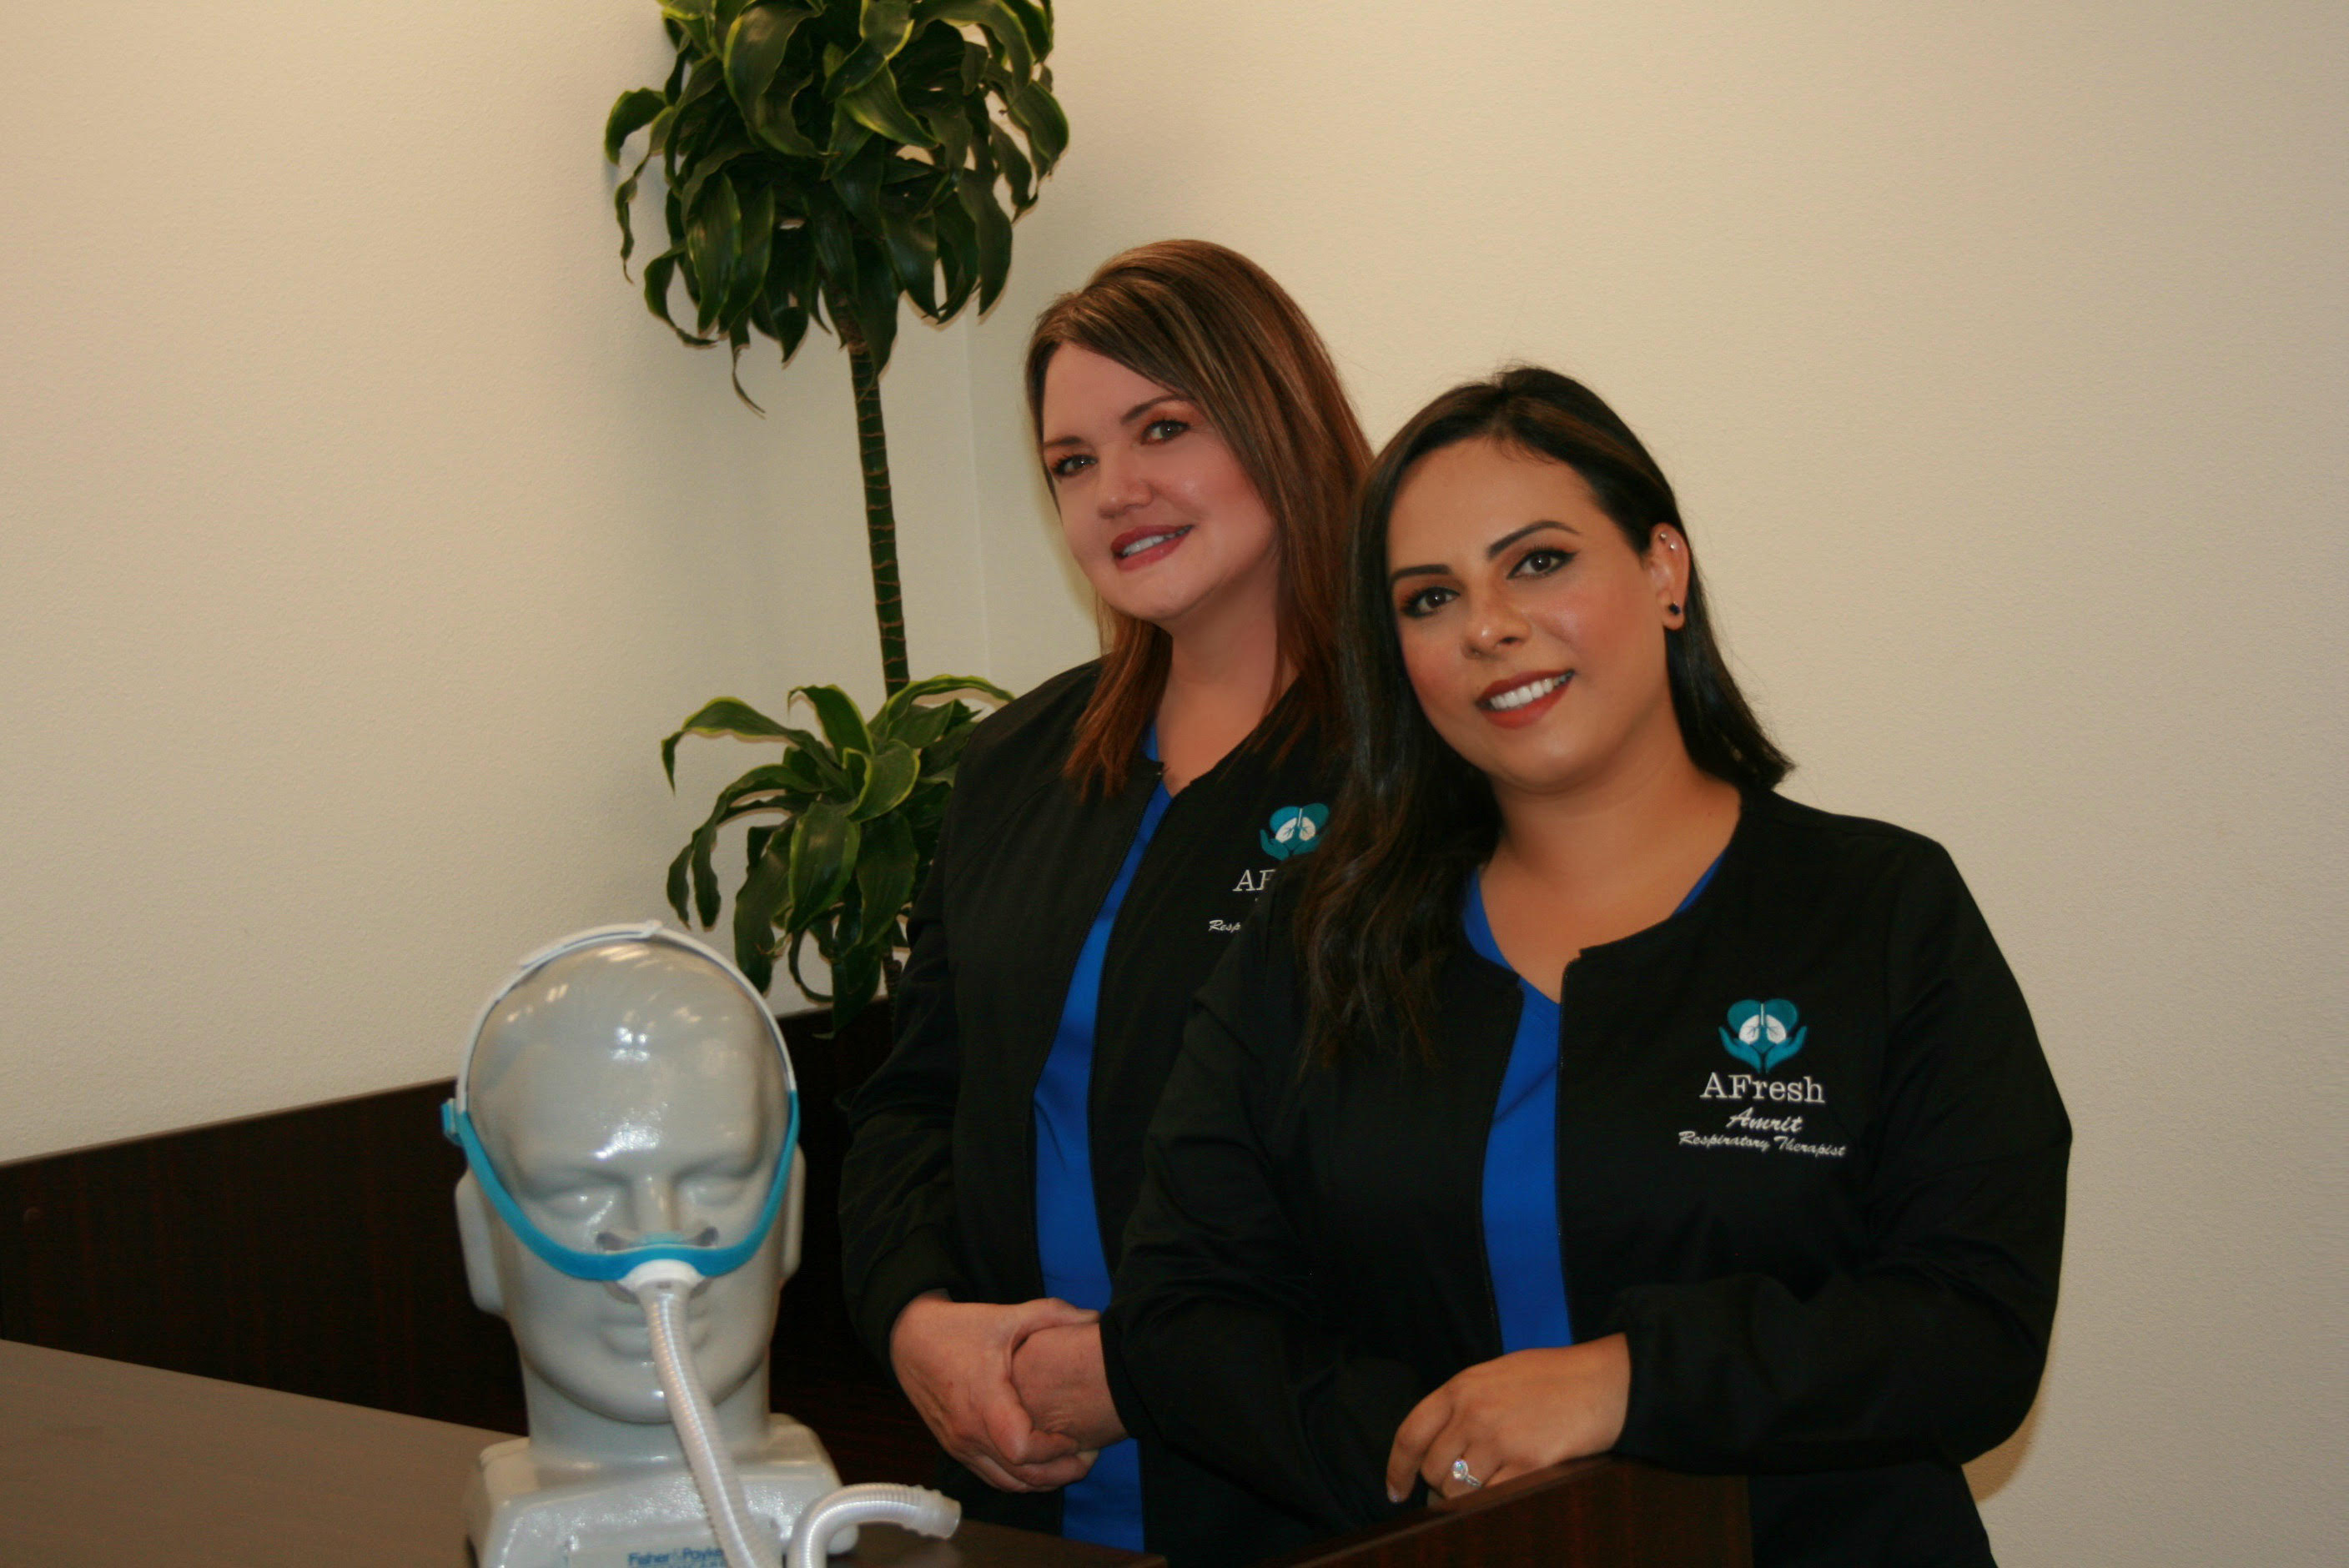 Clients Discover a Fresh Health Care Experience at Bellingham Respiratory Care and Equipment Company